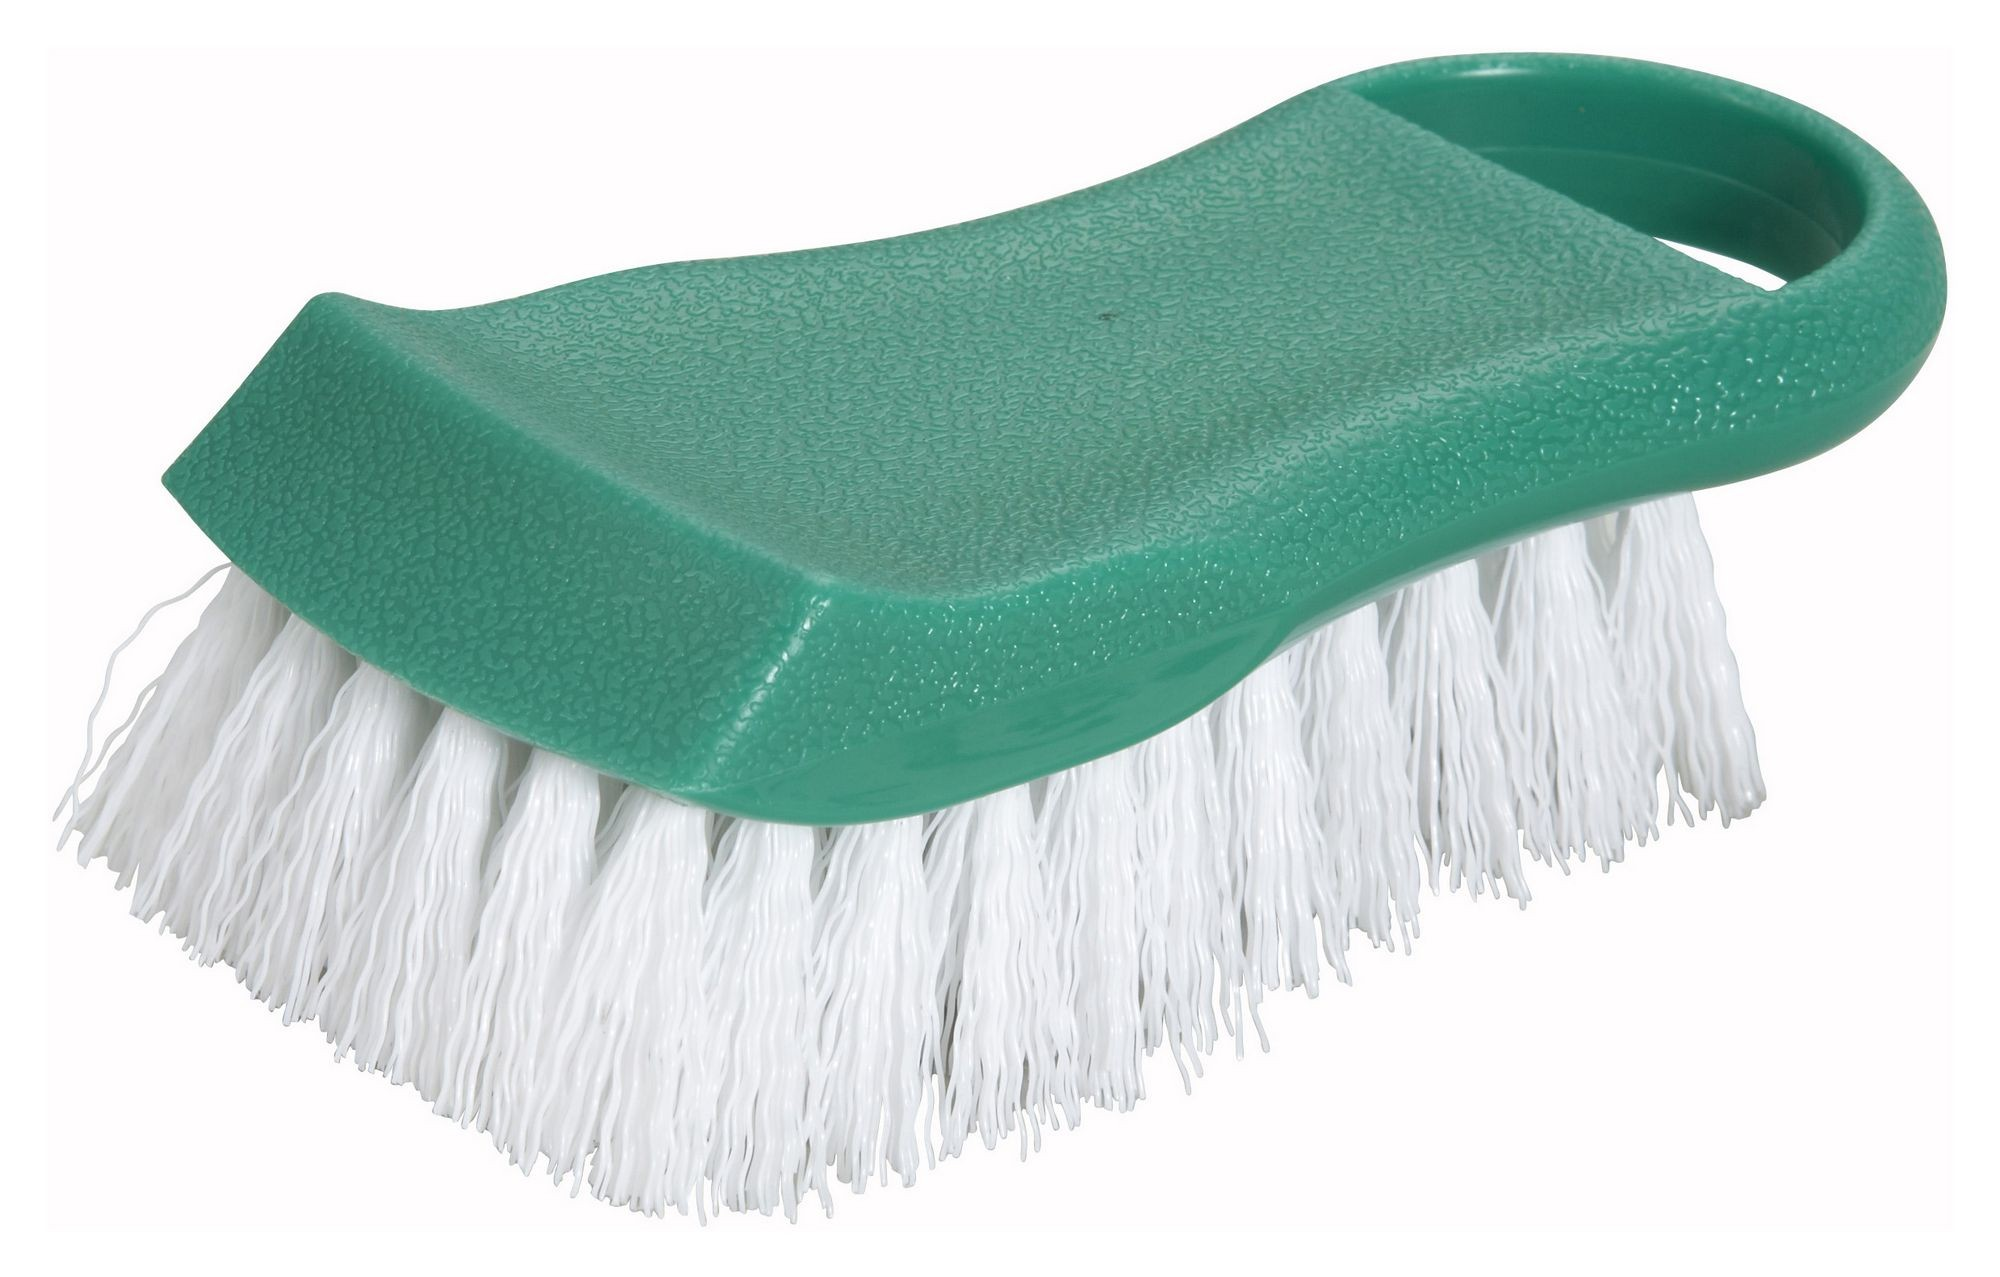 Winco CBR-GR Green Cutting Board Brush